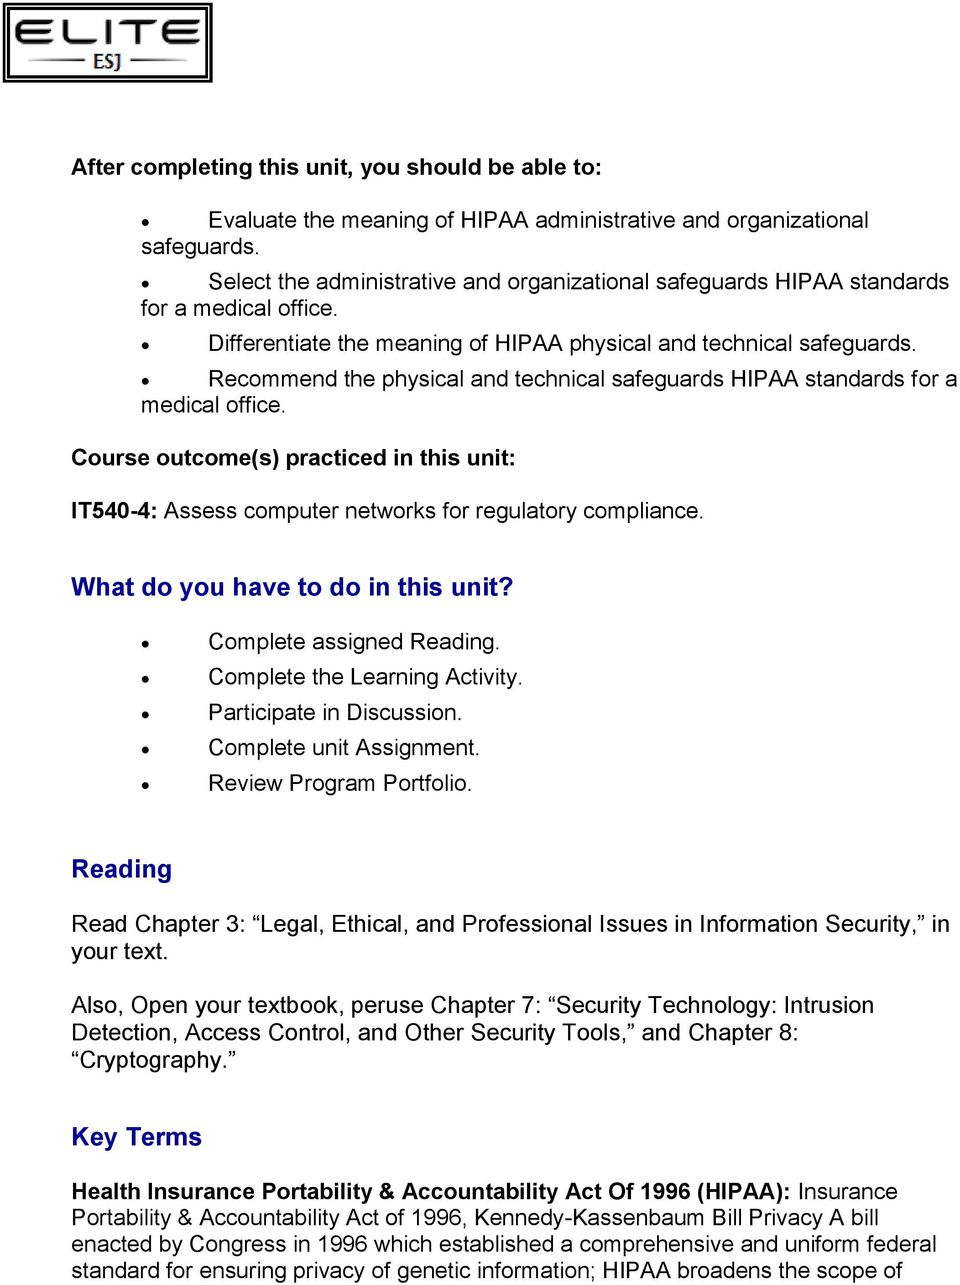 Recommend the physical and technical safeguards HIPAA standards for a medical office. Course outcome(s) practiced in this unit: IT540-4: Assess computer networks for regulatory compliance.